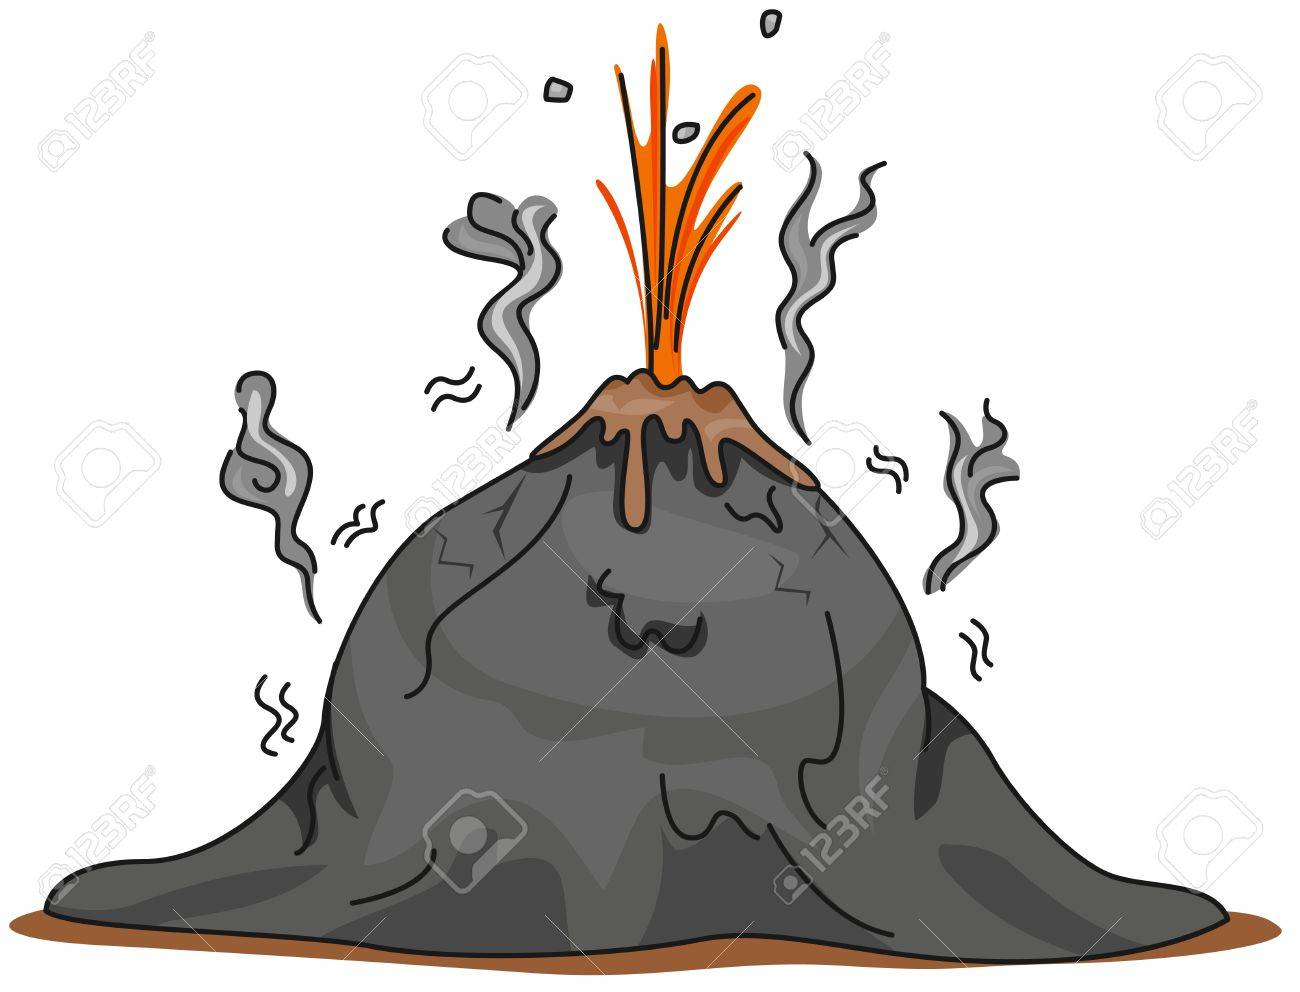 Illustration of a Volcano About to Erupt Stock Illustration - 8517120